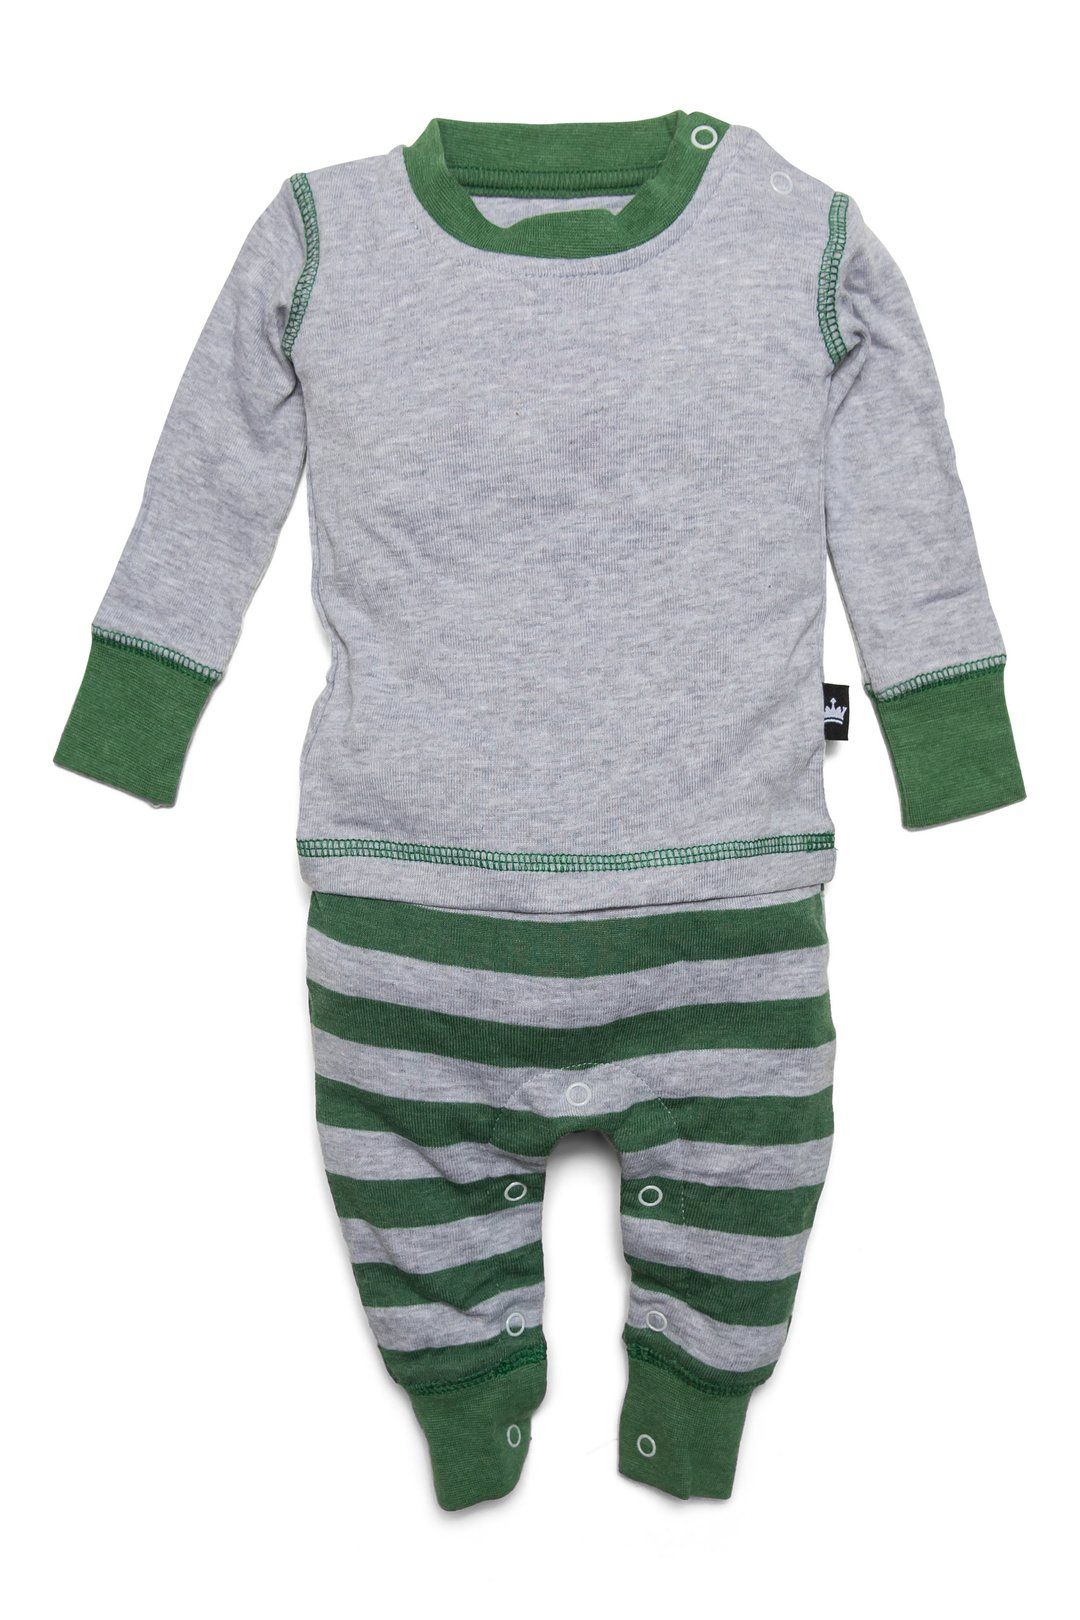 Green & Gray Stripe Matching Family Pajamas Matching